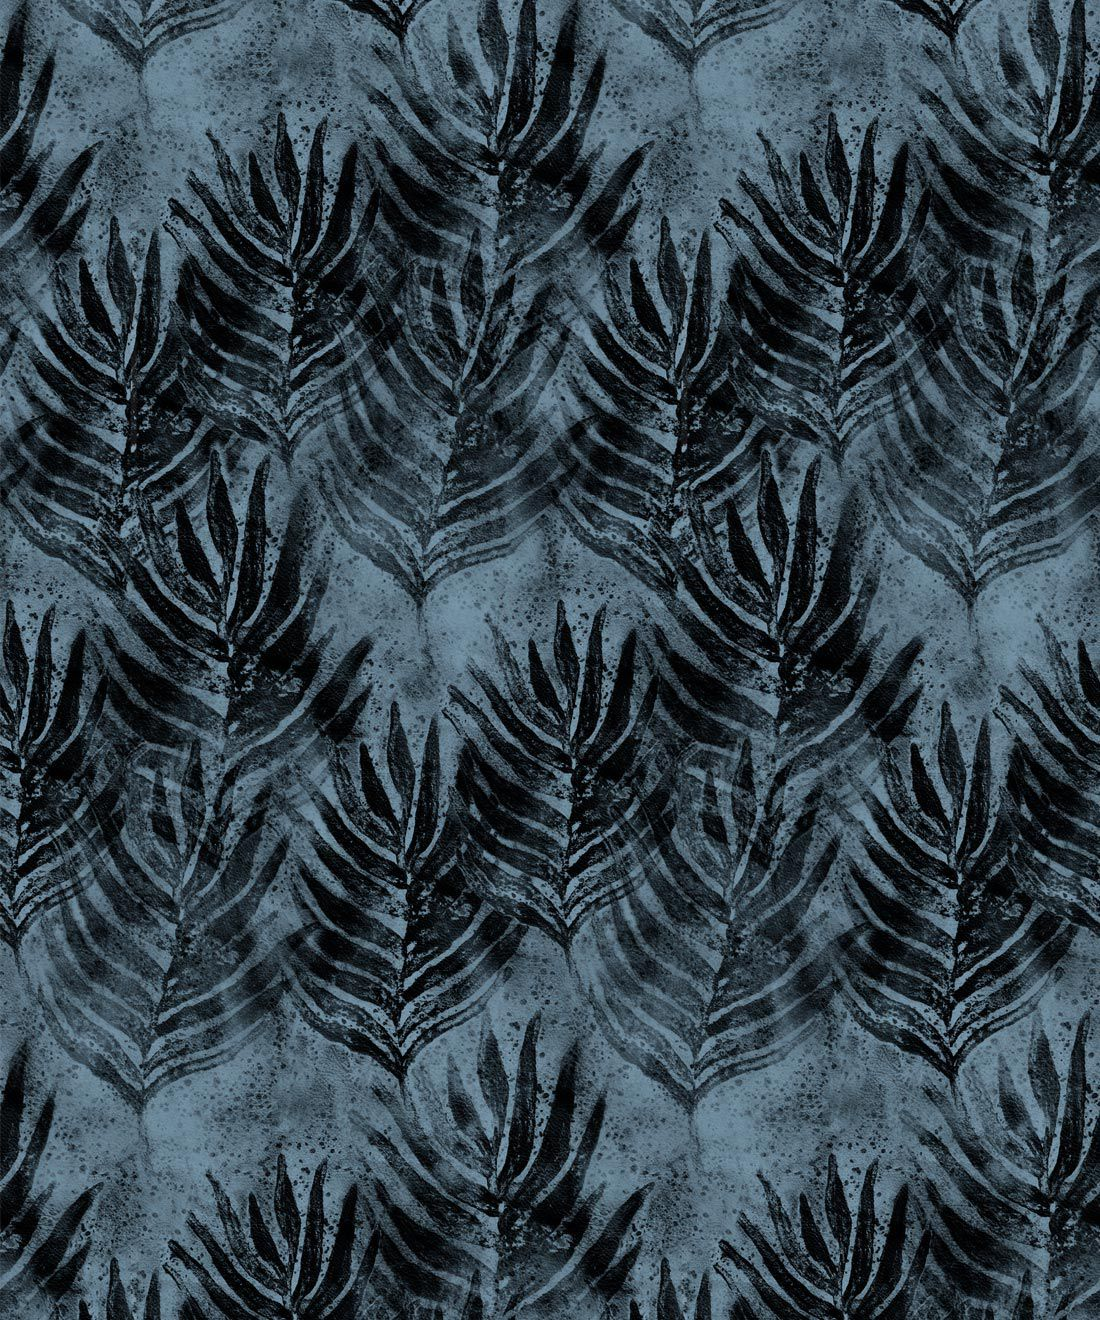 Evening Silhouette Shibori Leaf Wallpaper